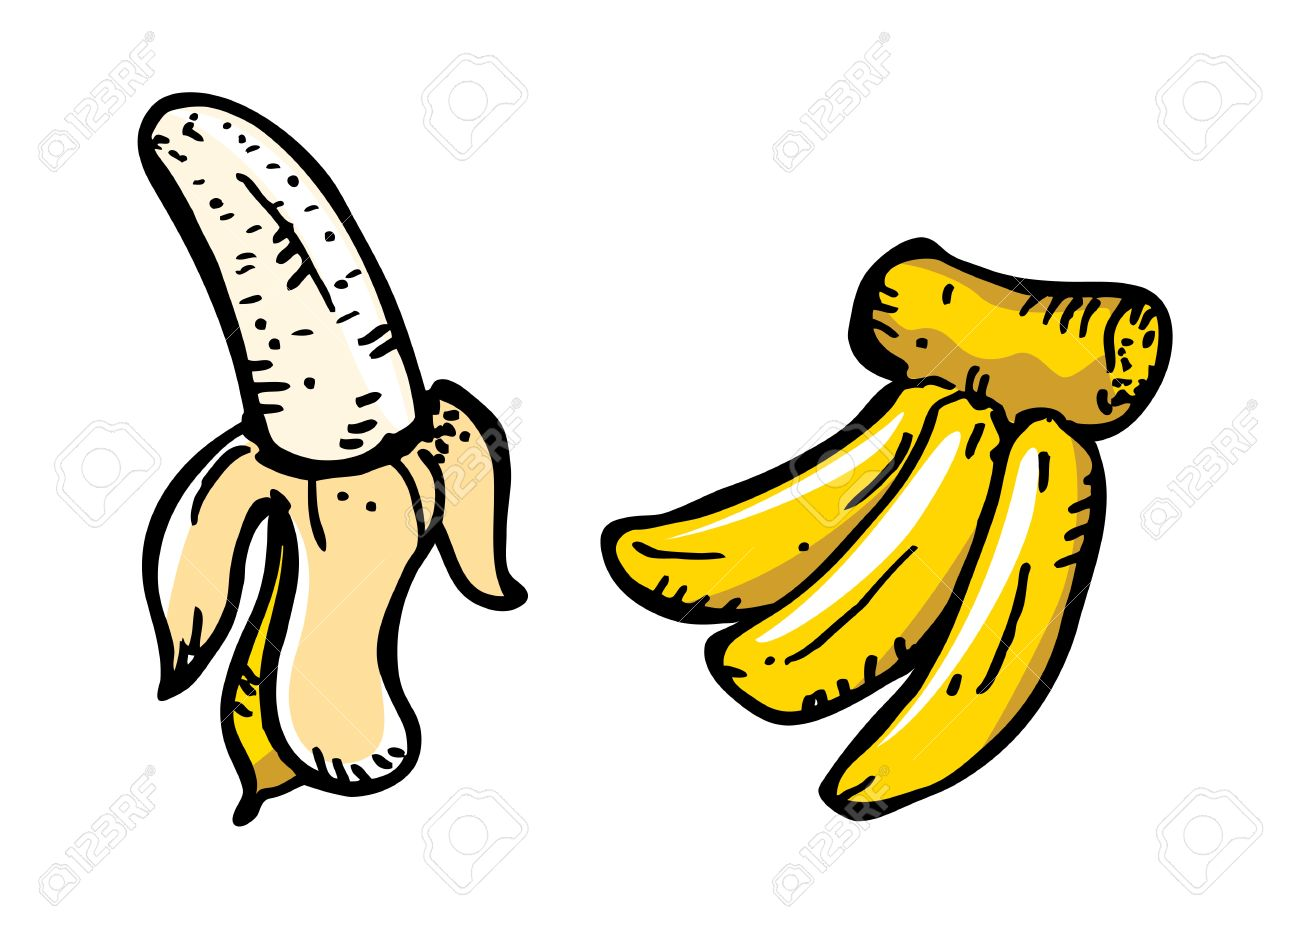 Banana In Doodle Style Royalty Free Cliparts, Vectors, And Stock.